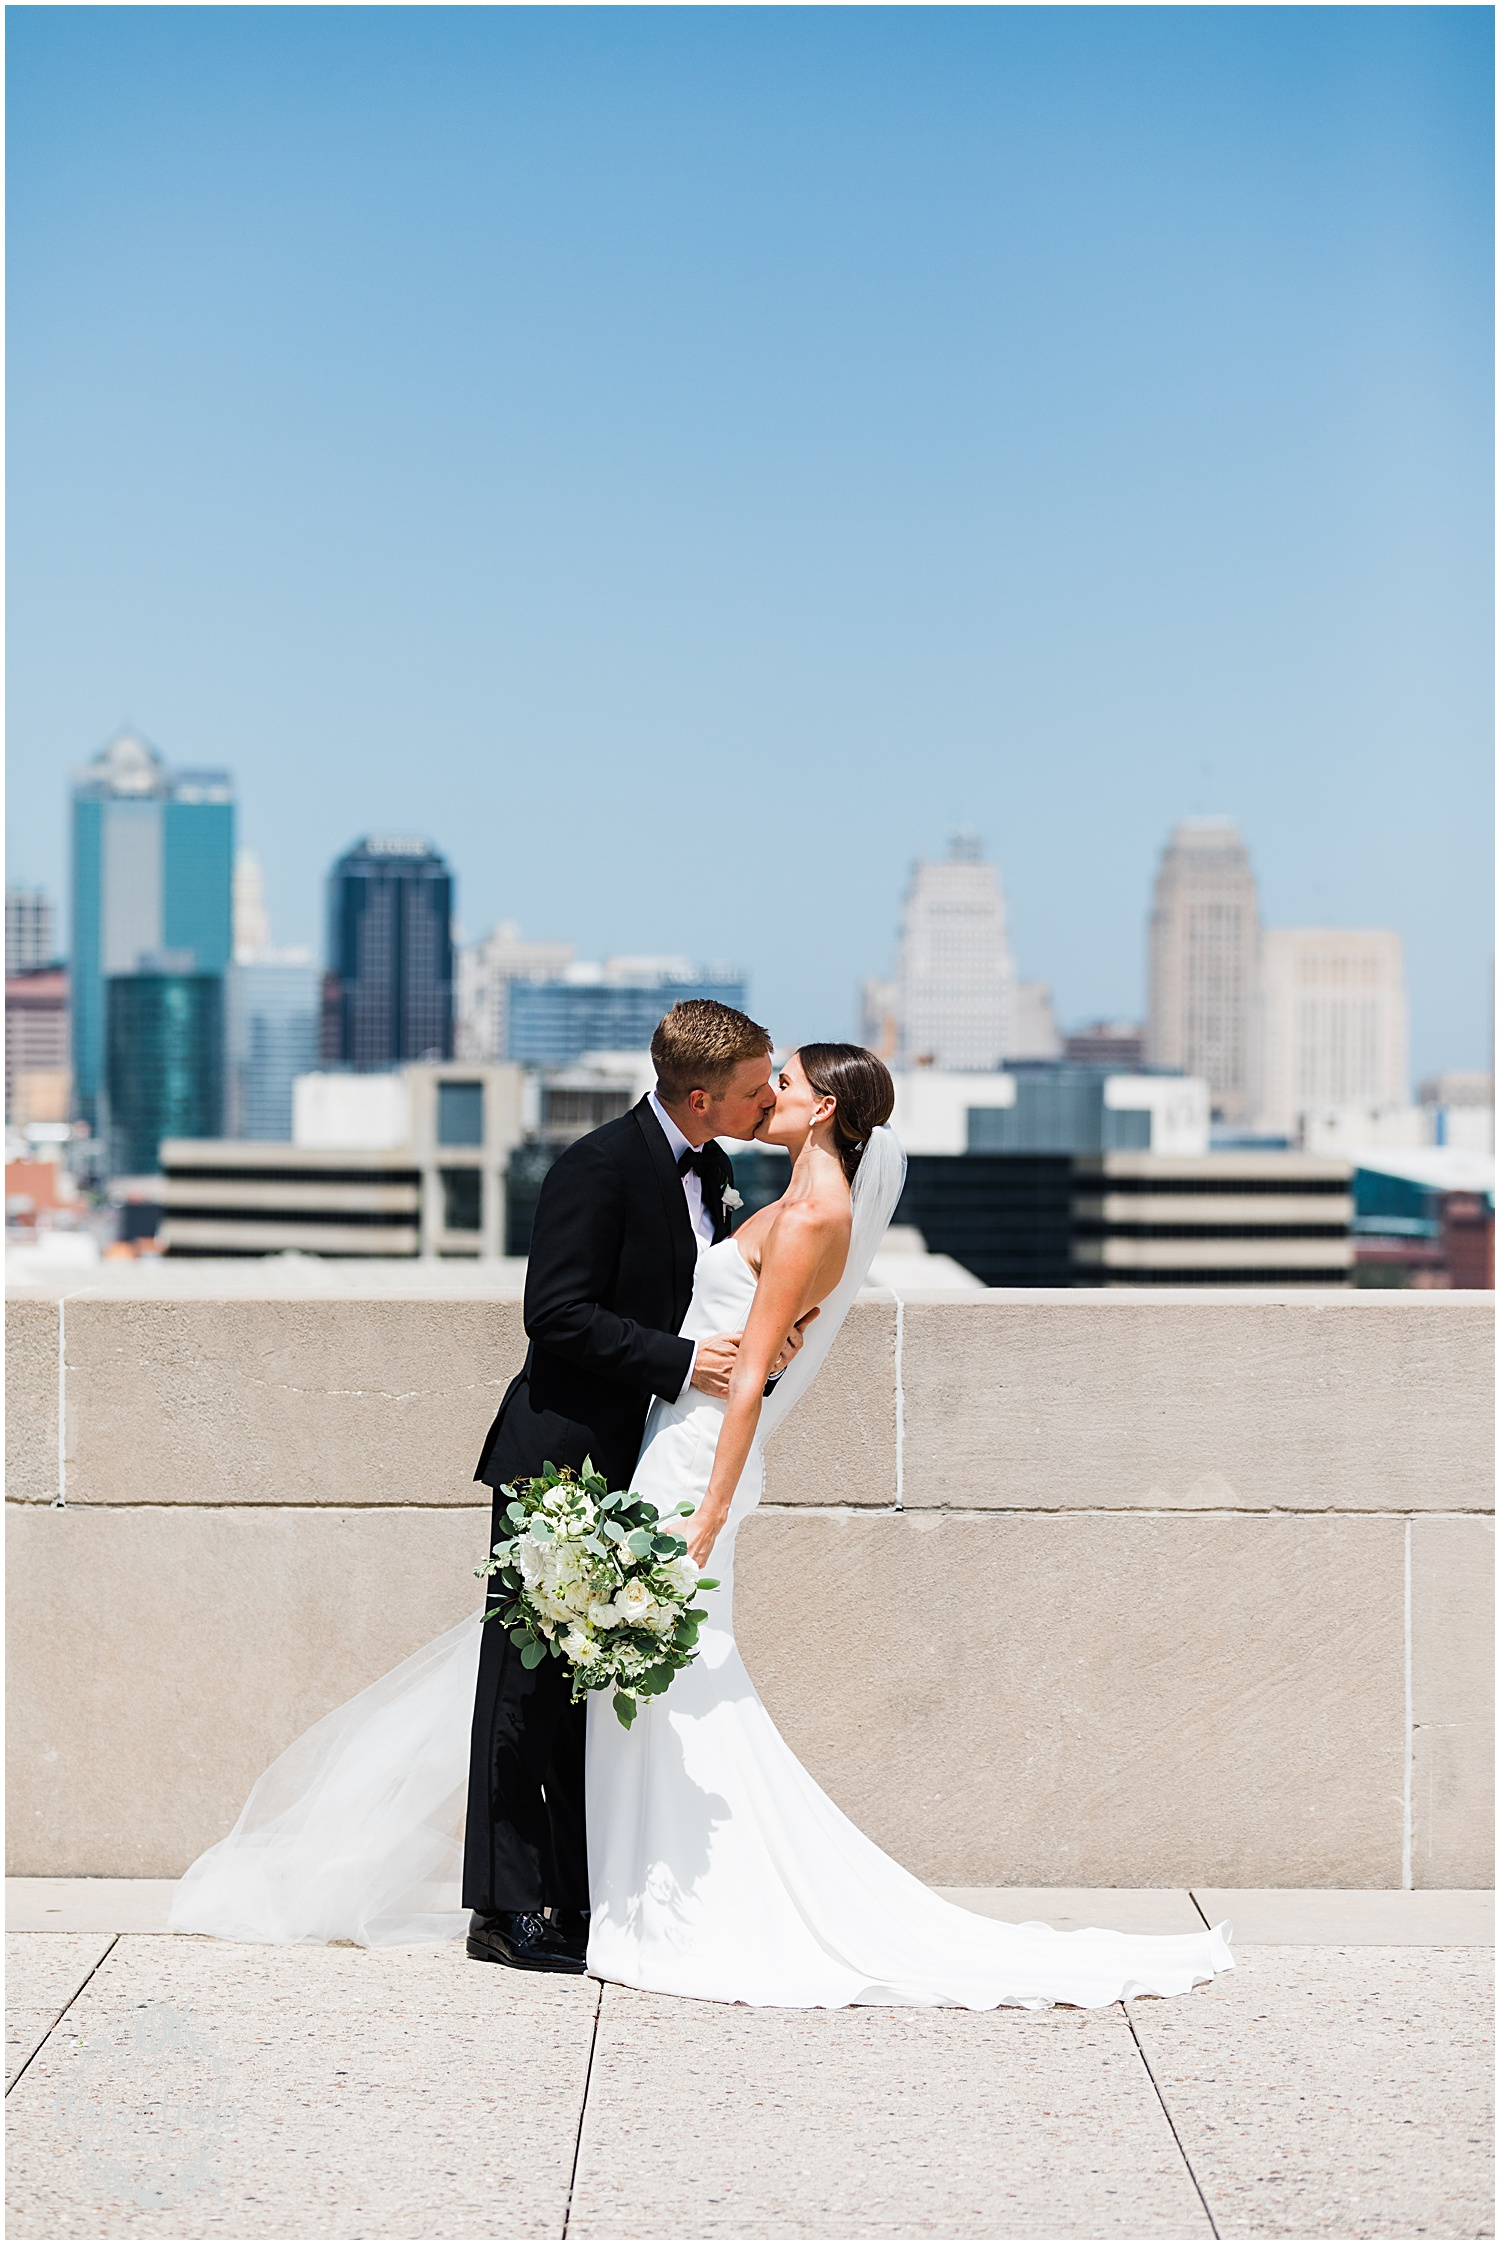 JOANNE & GEORGE MARRIED BLOG | MARISSA CRIBBS PHOTOGRAPHY | THE ABBOTT | KANSAS CITY WEDDING PHOTOS_9048.jpg